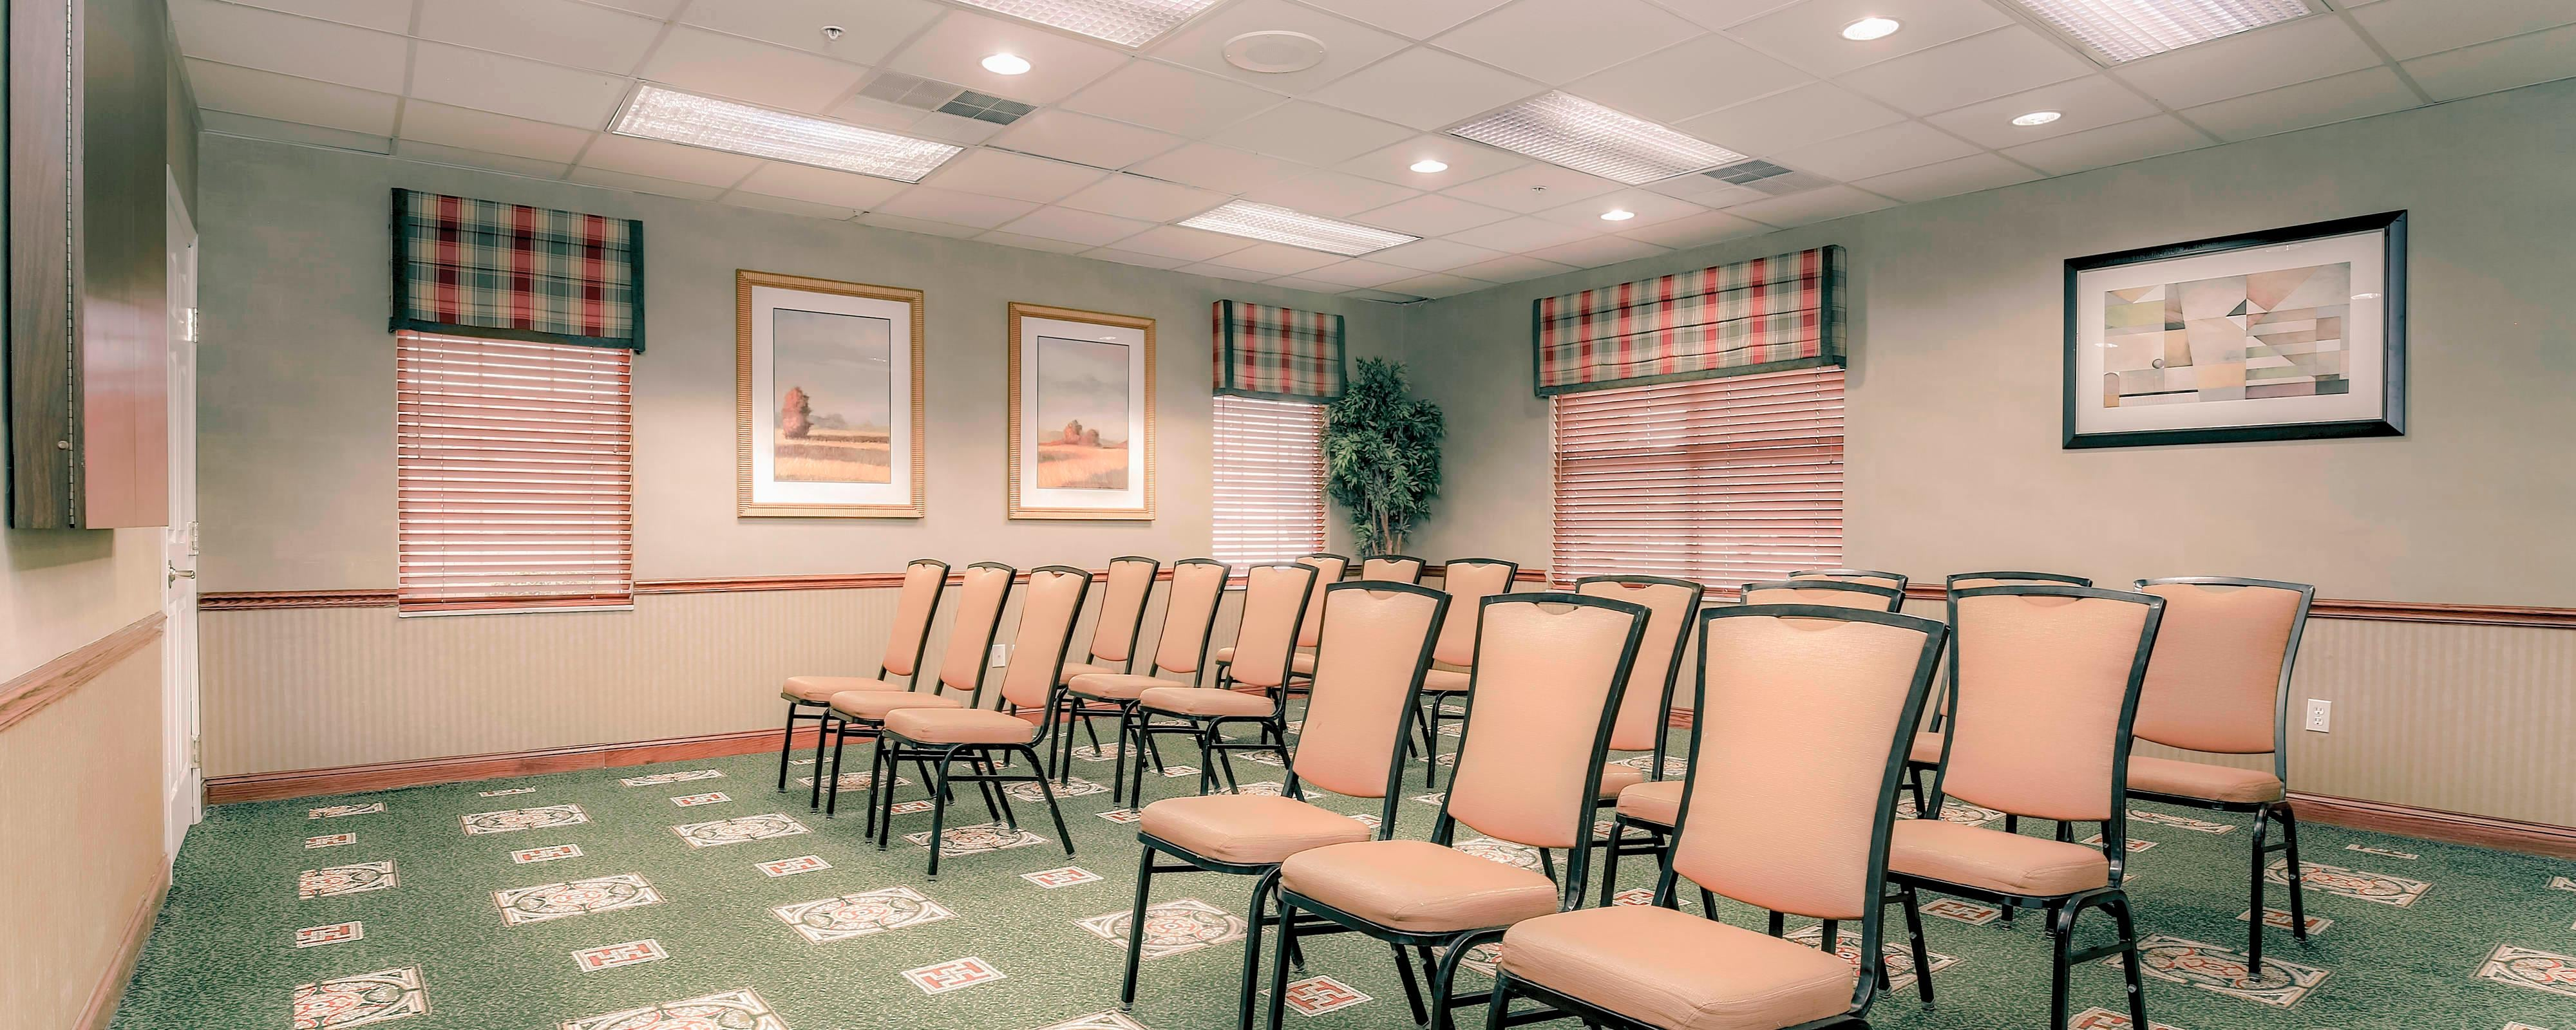 Hotels With Meeting Rooms Tulsa